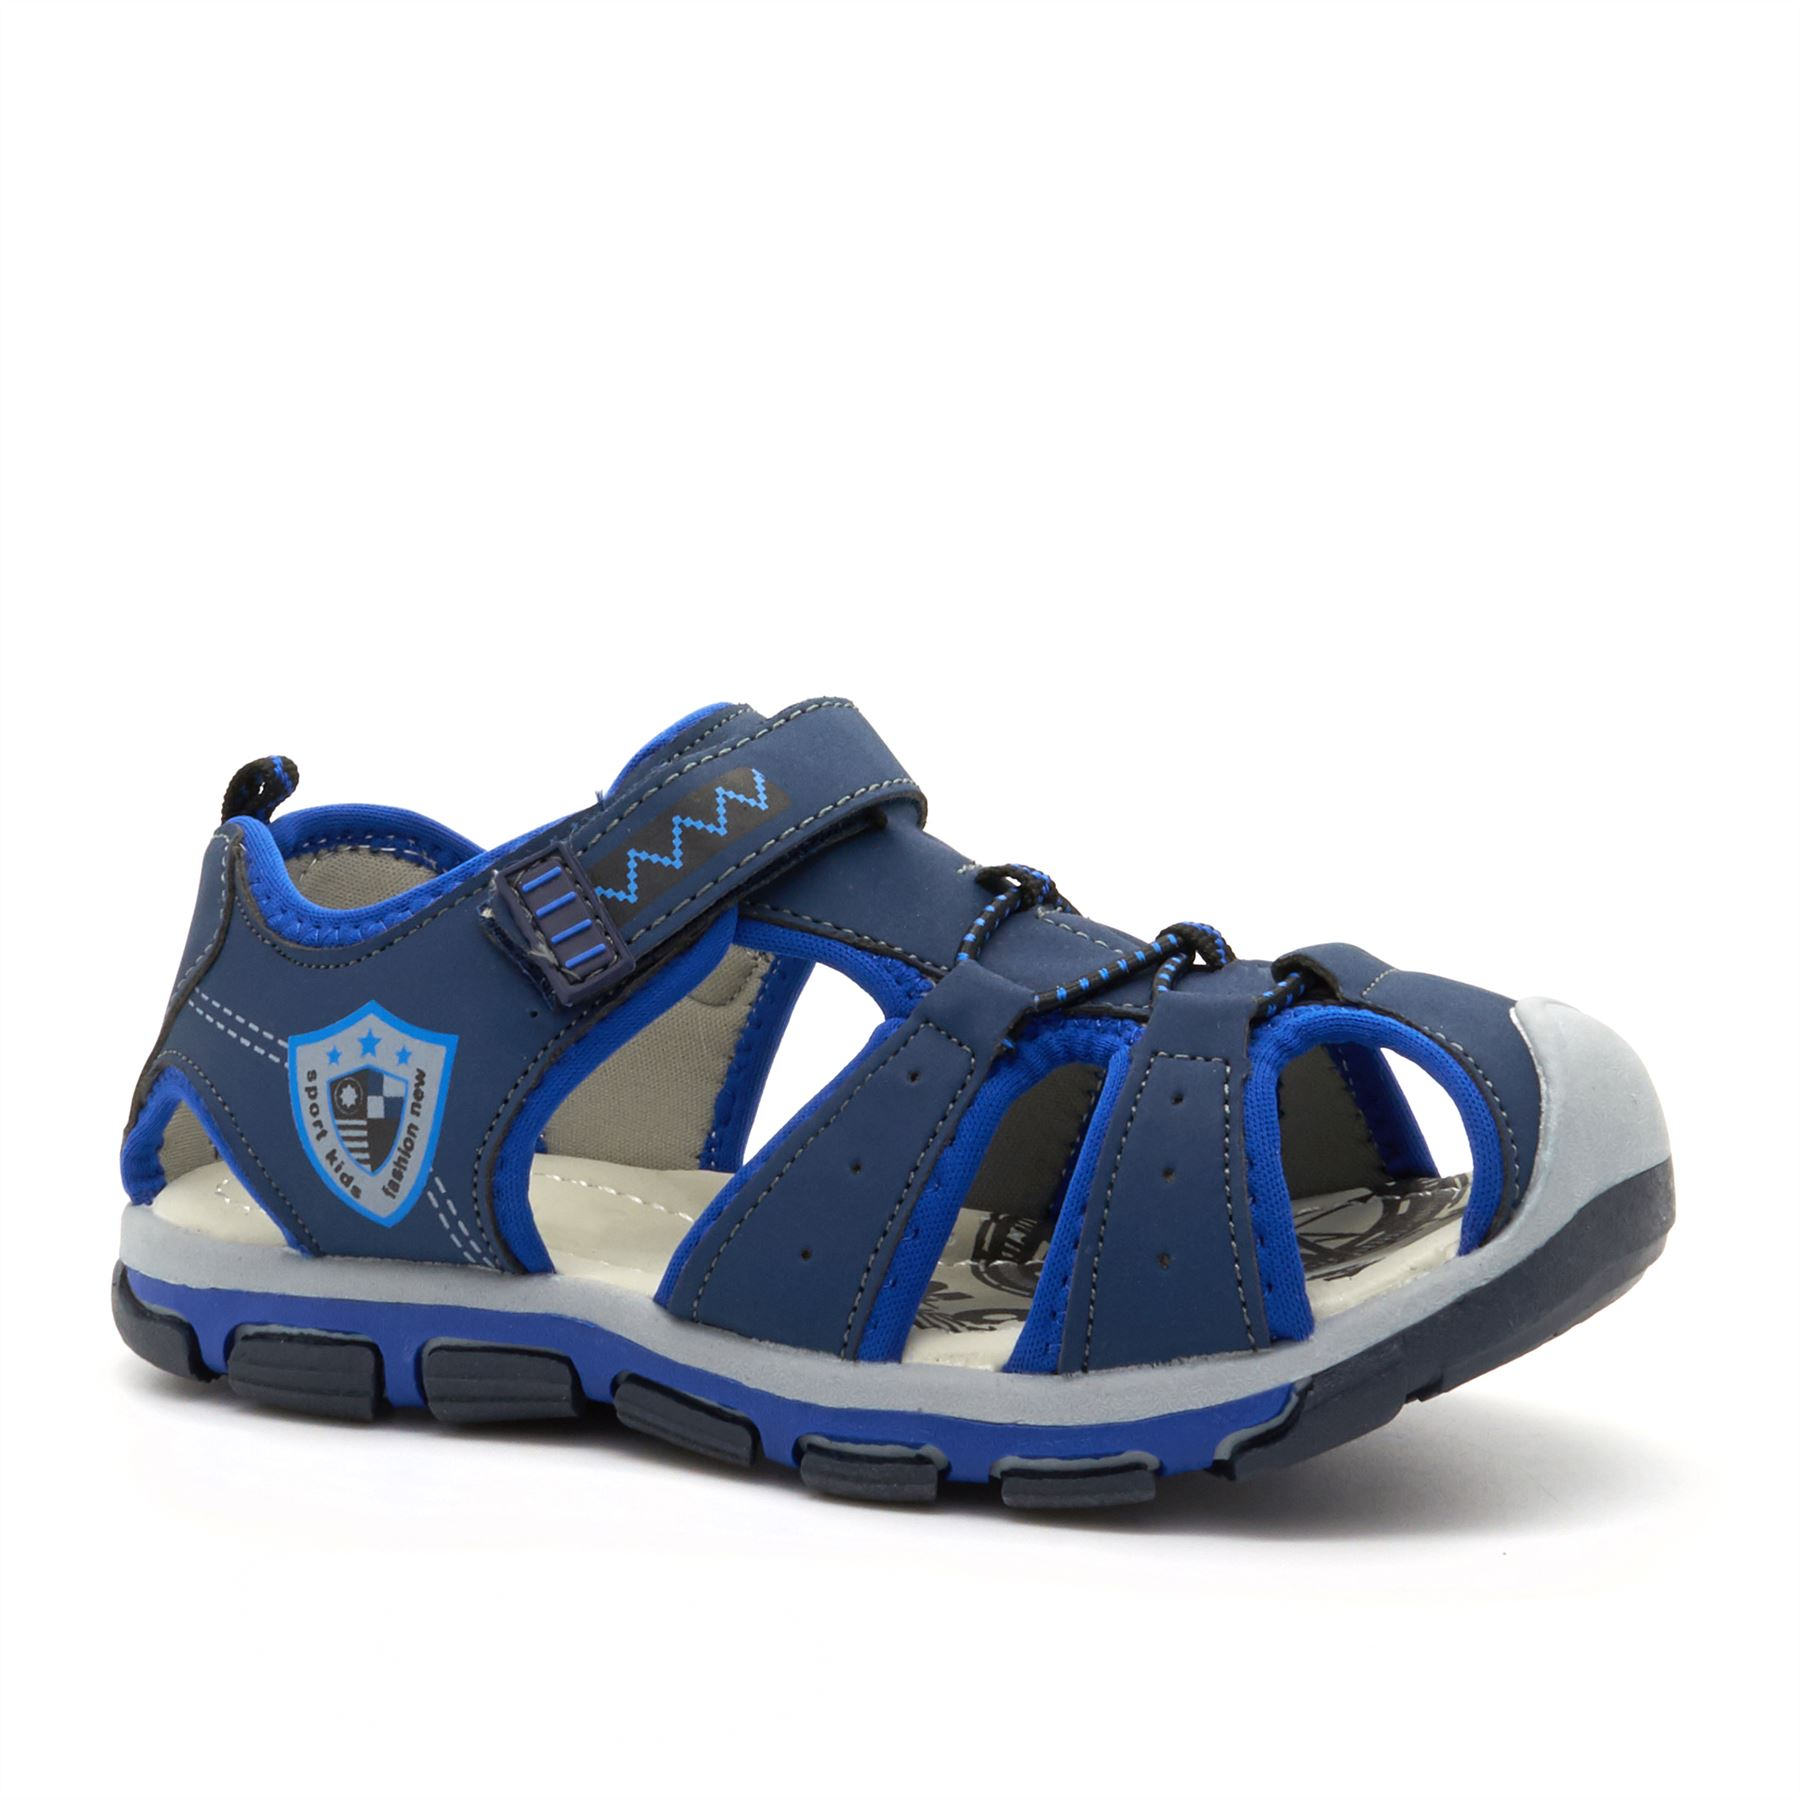 New Boys Kids Casual Sandals Summer Beach Sports Walking Touch Fasten Strap 7-12